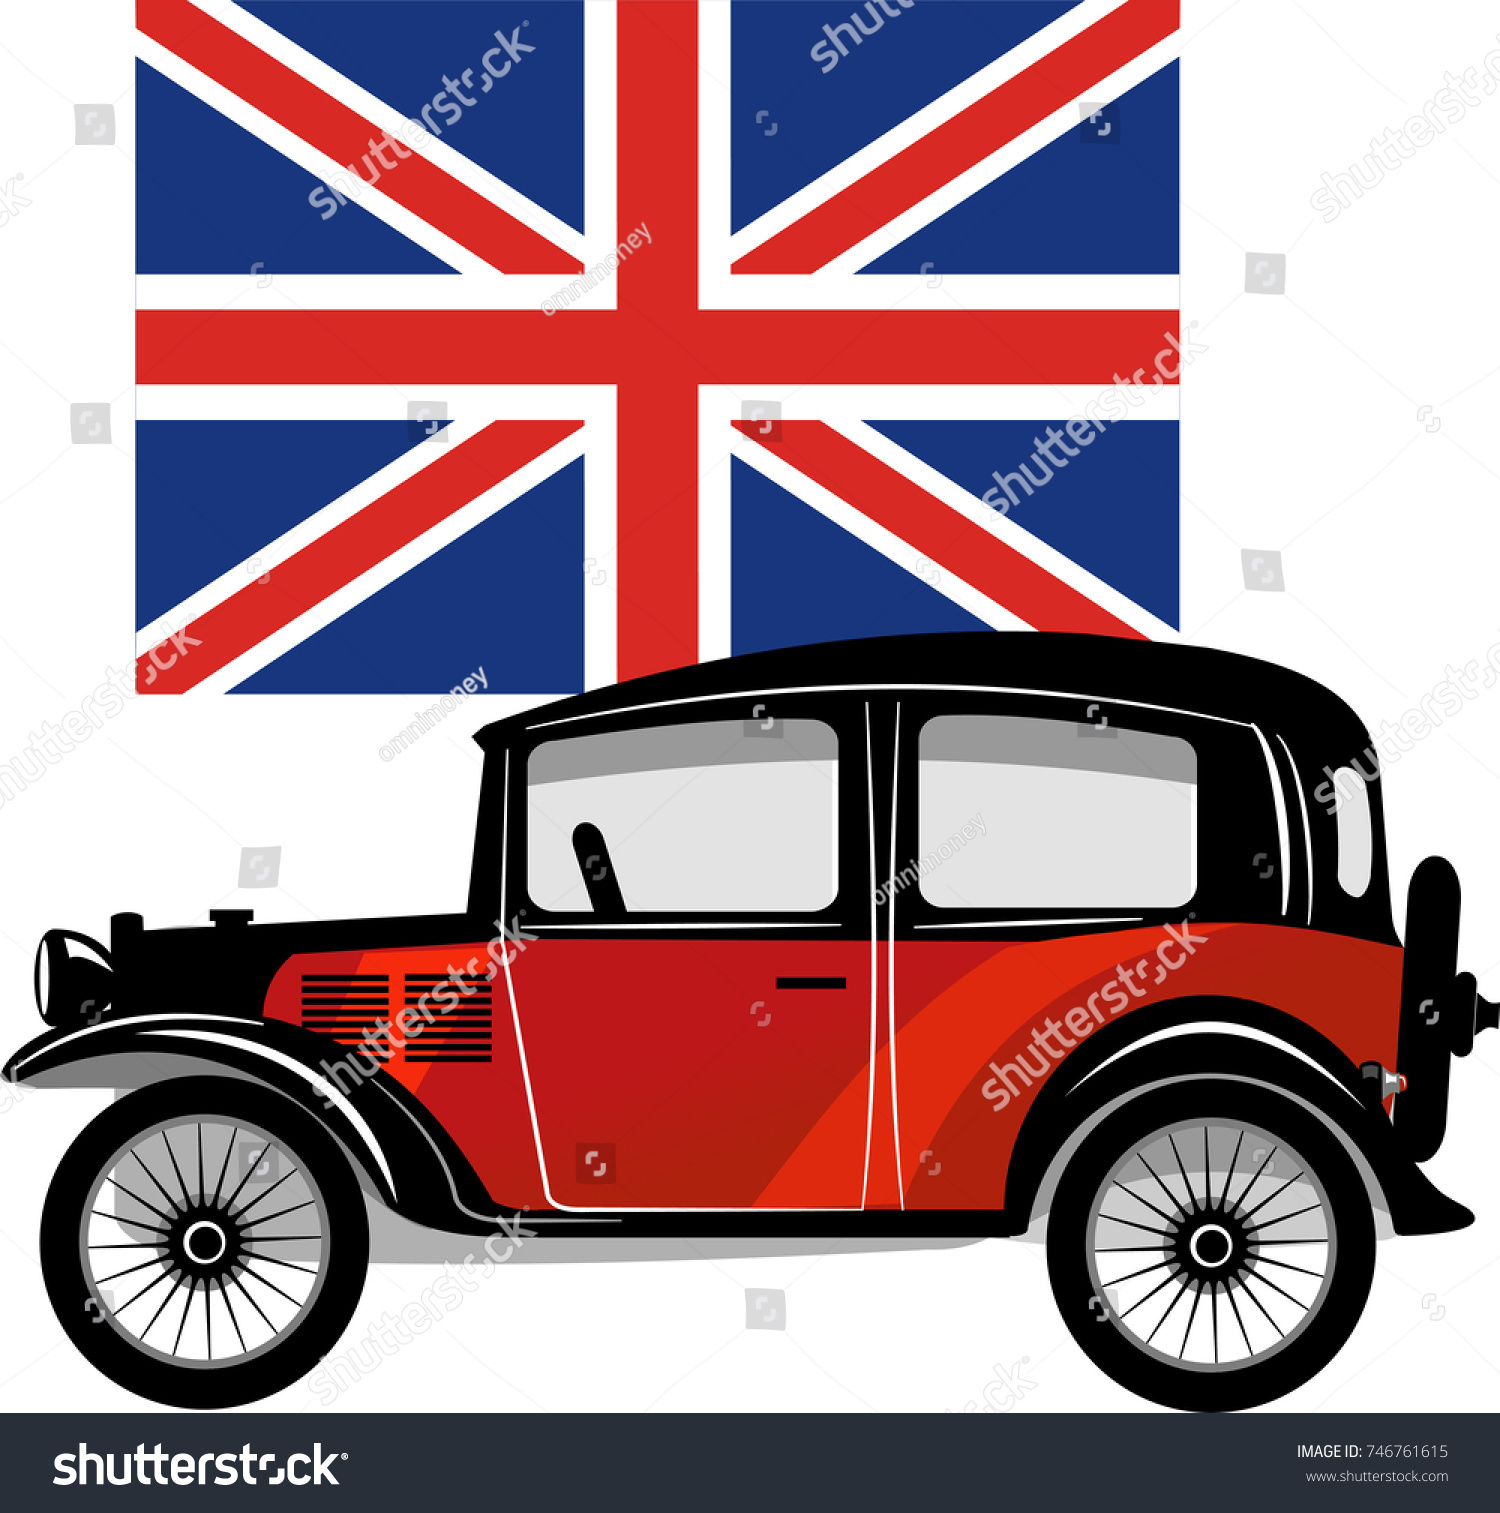 Old Small Car British Flag Stock Illustration 746761615 - Shutterstock